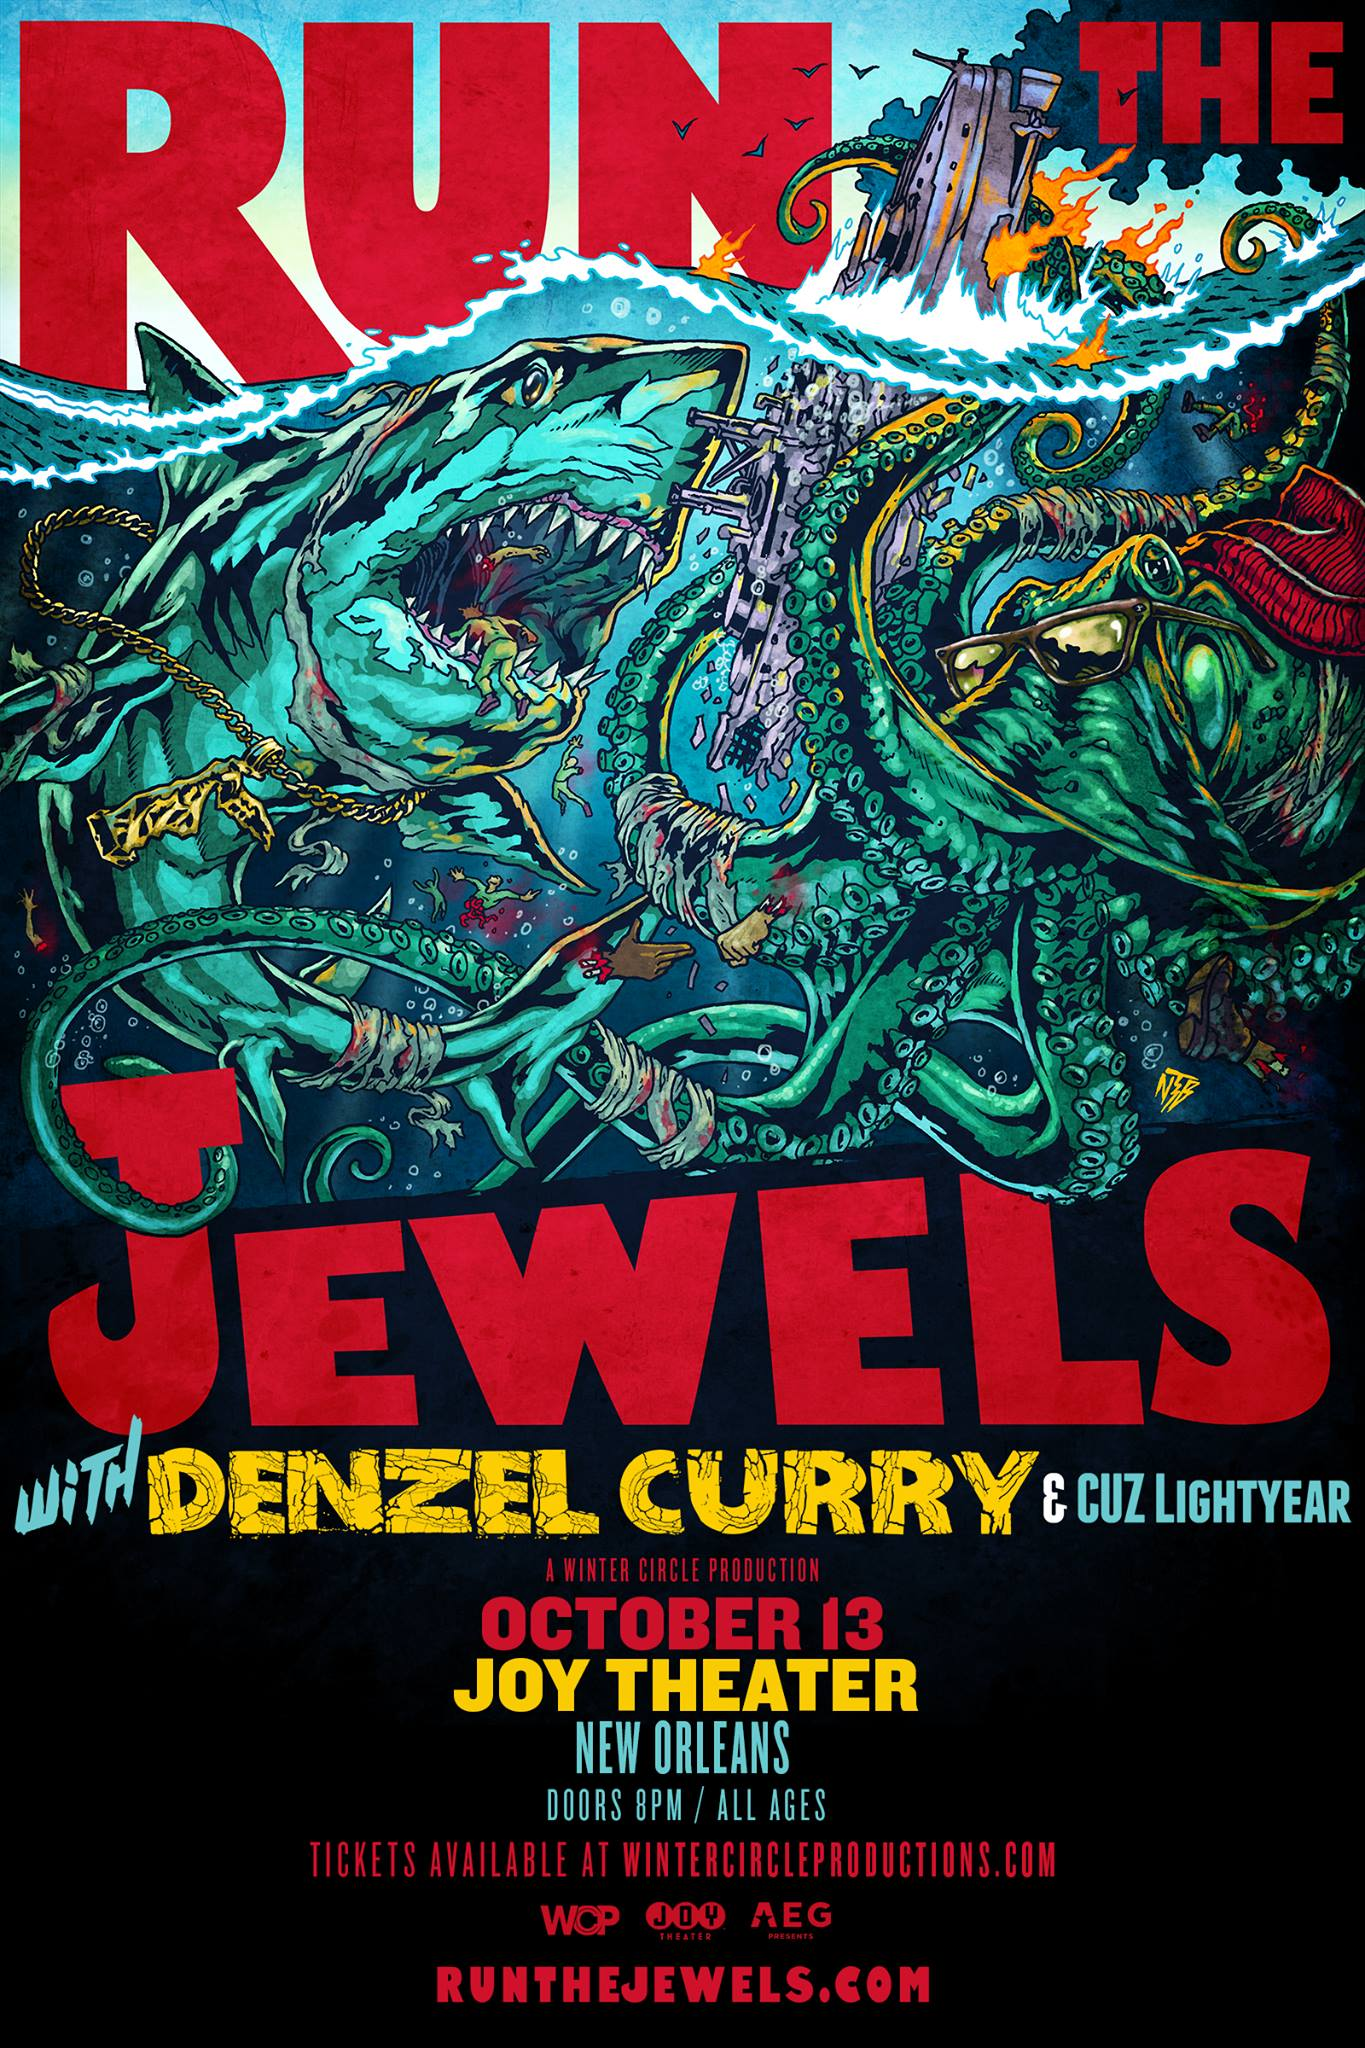 RUN THE JEWELS with Denzel Curry & Cuz Lightyear - Joy Theater